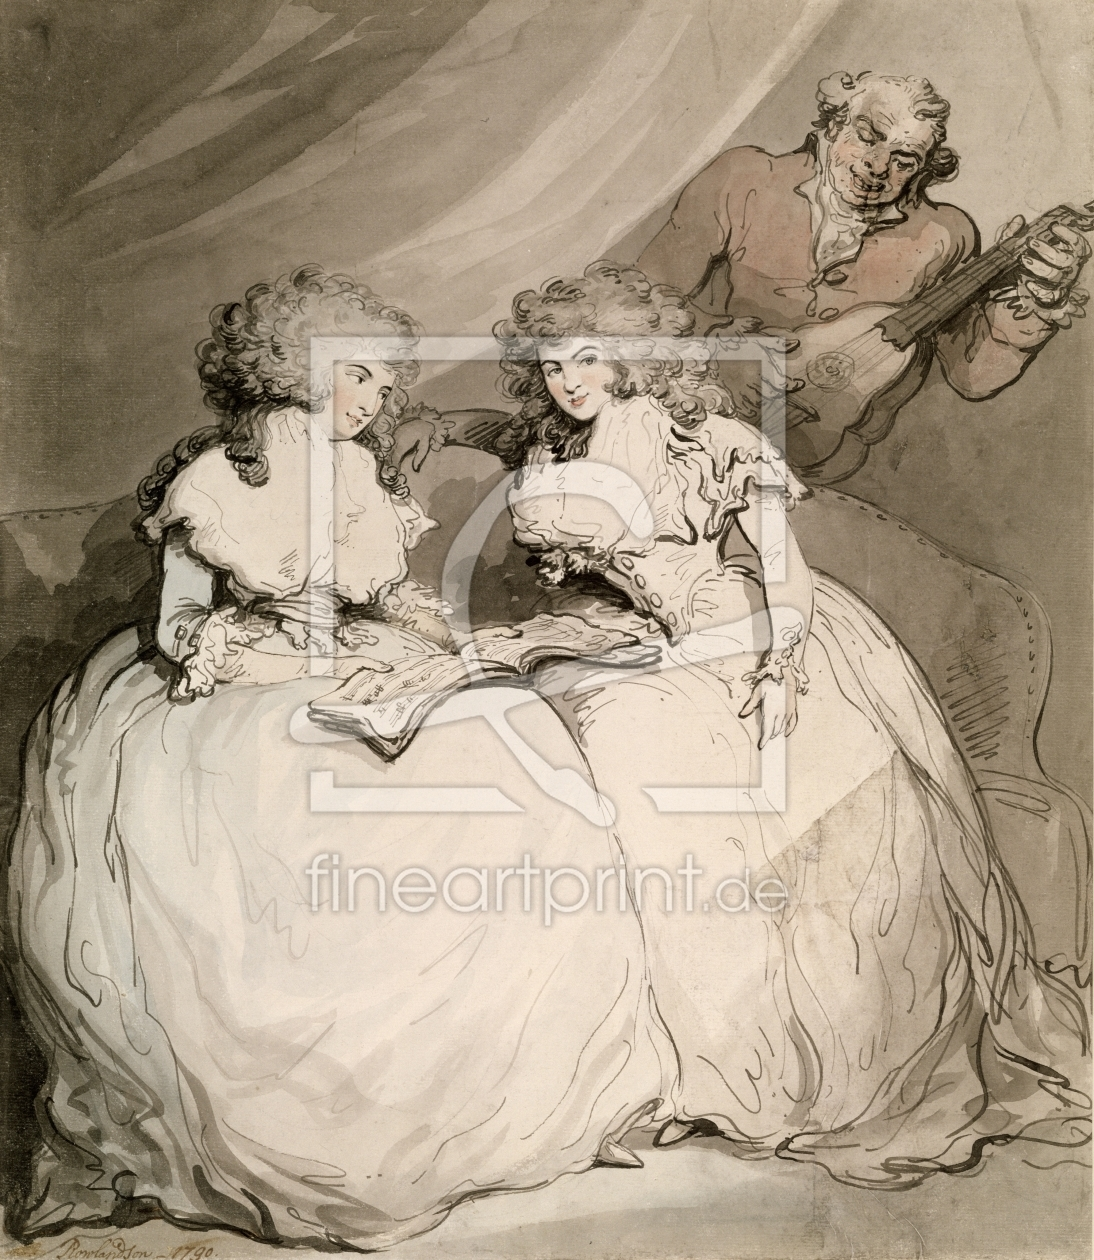 Bild-Nr.: 31001474 The Duchess of Devonshire and her Sister, the Countess of Bessborough erstellt von Rowlandson, Thomas